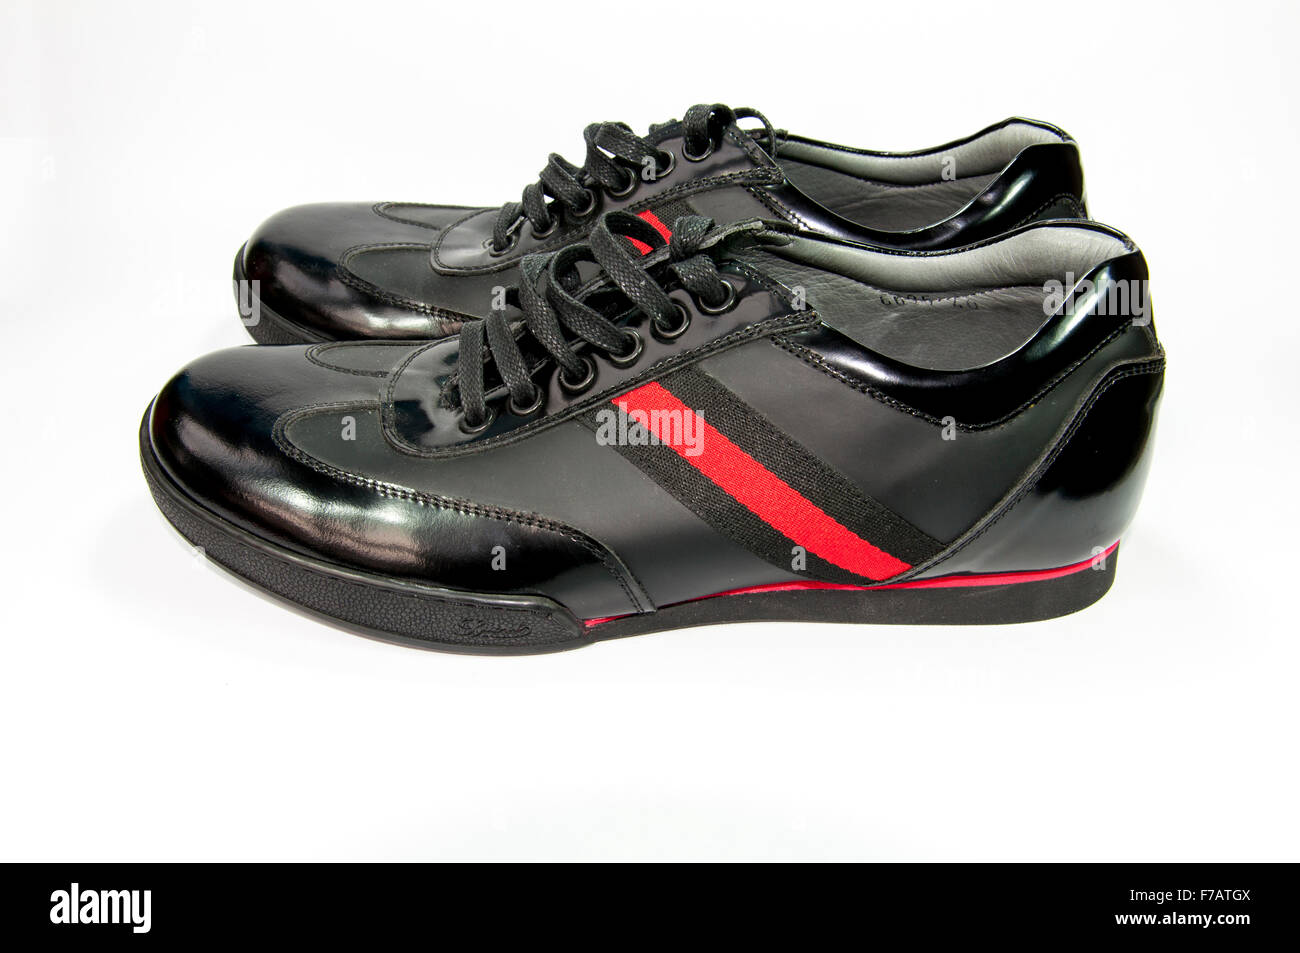 Black men shoes with red stripe isolated with white background - Stock Image